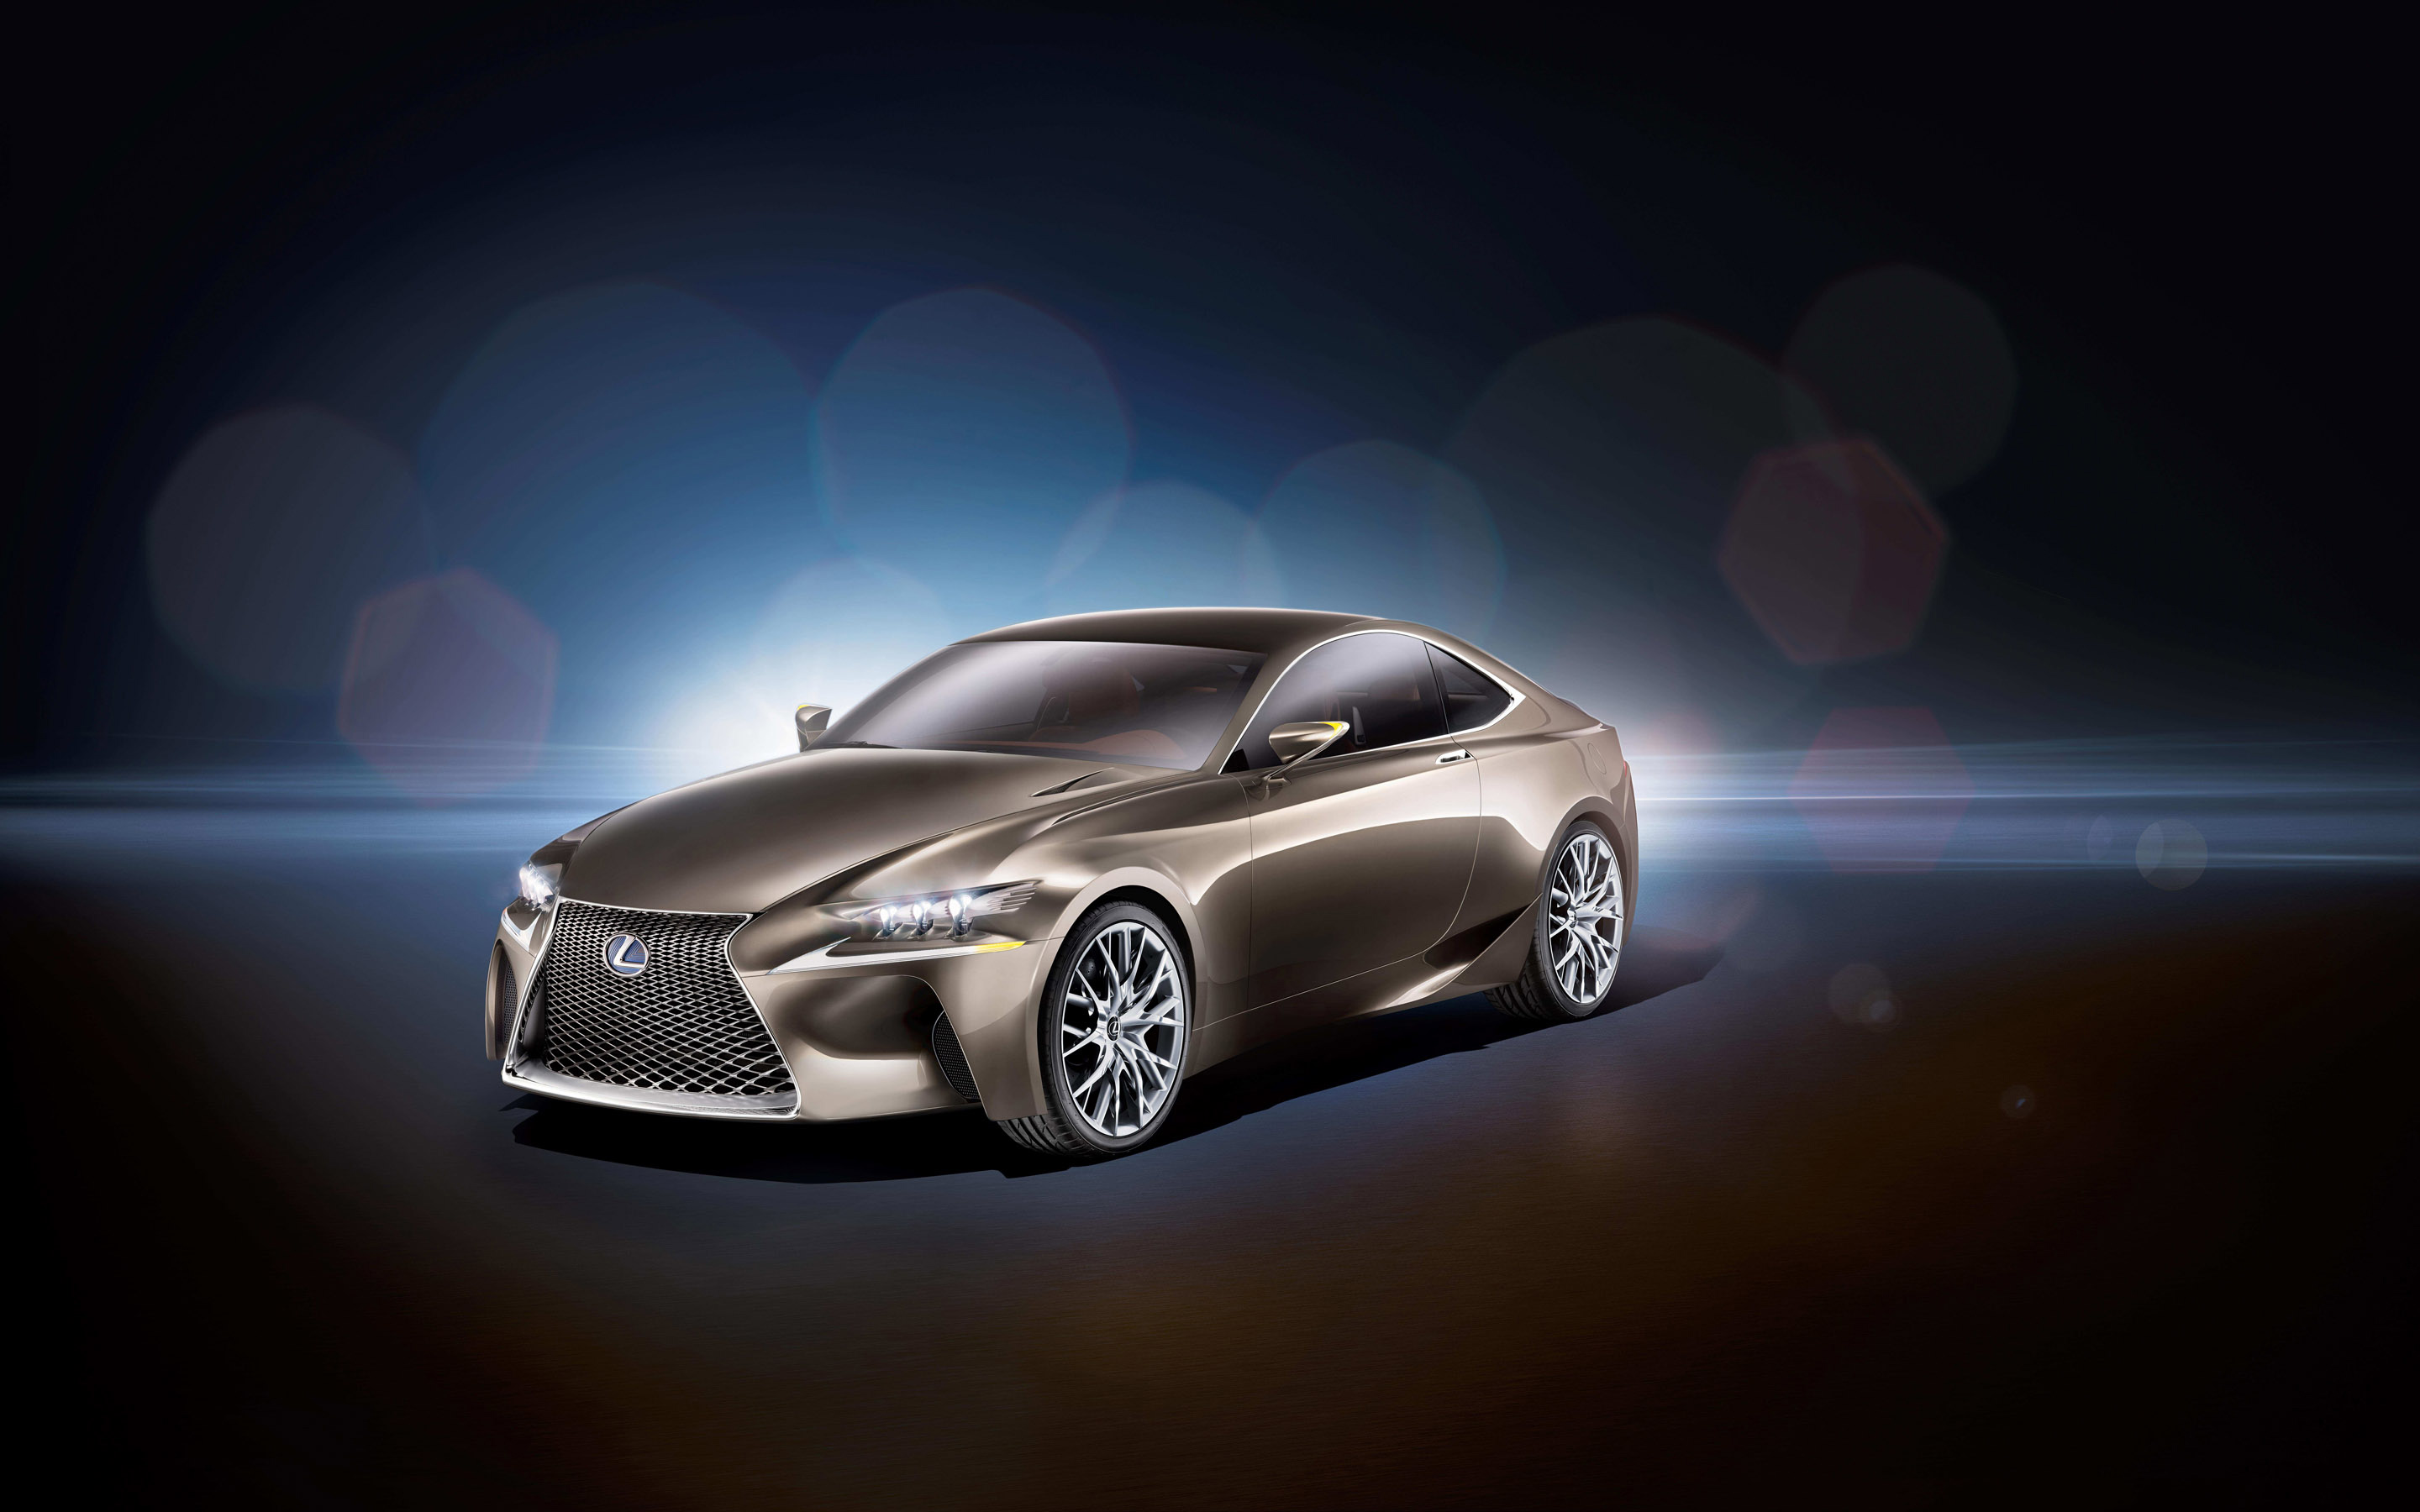 Download 2015 All New Lexus Rc F Cars Wallpapers For Your Mobile Cell Phone